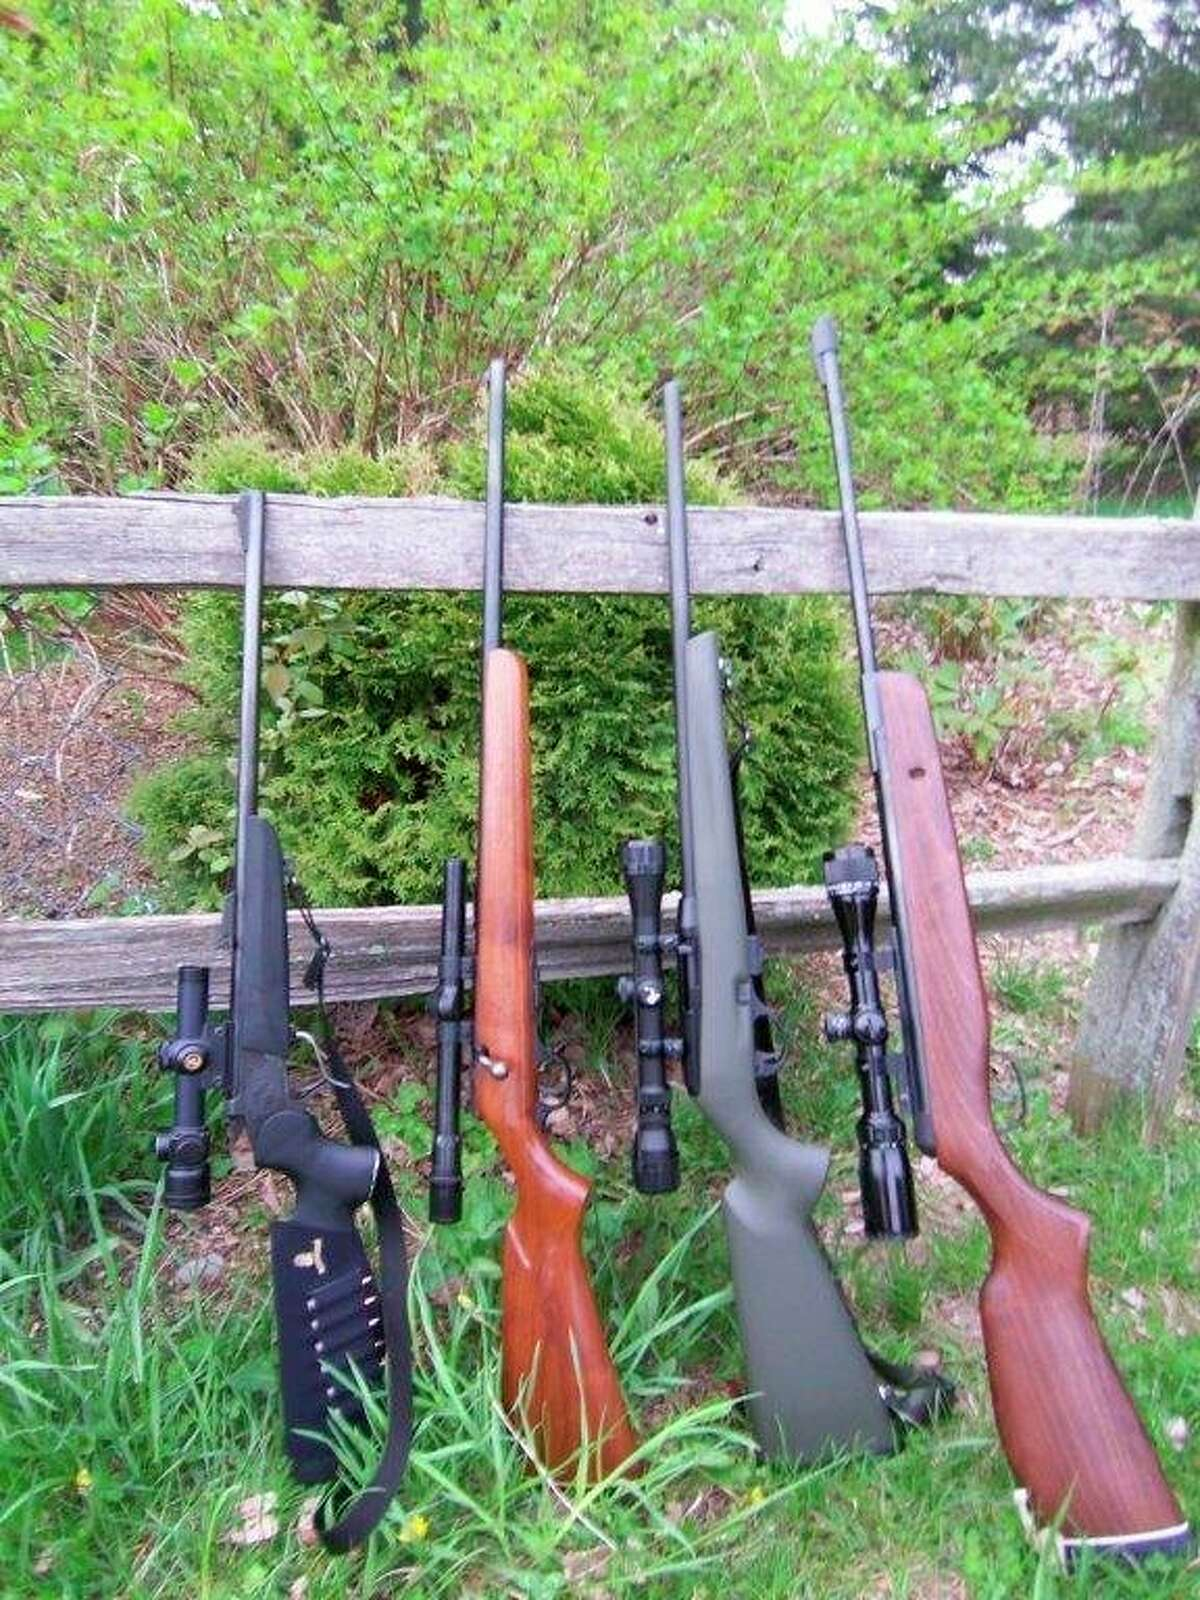 Some of the rifles Tom Lounsbury uses to hunt woodchucks are(from left) a(4X) scoped T/C Contender Carbine in .223, a (4X) scoped H&R bolt-action in.22 rimfire, a (3-9X) scoped Remington semi-auto in .22 rimfire, and a (3-9X)scoped, .17-caliber GAMO air rifle. (Tom Lounsbury/Hearst Michigan)